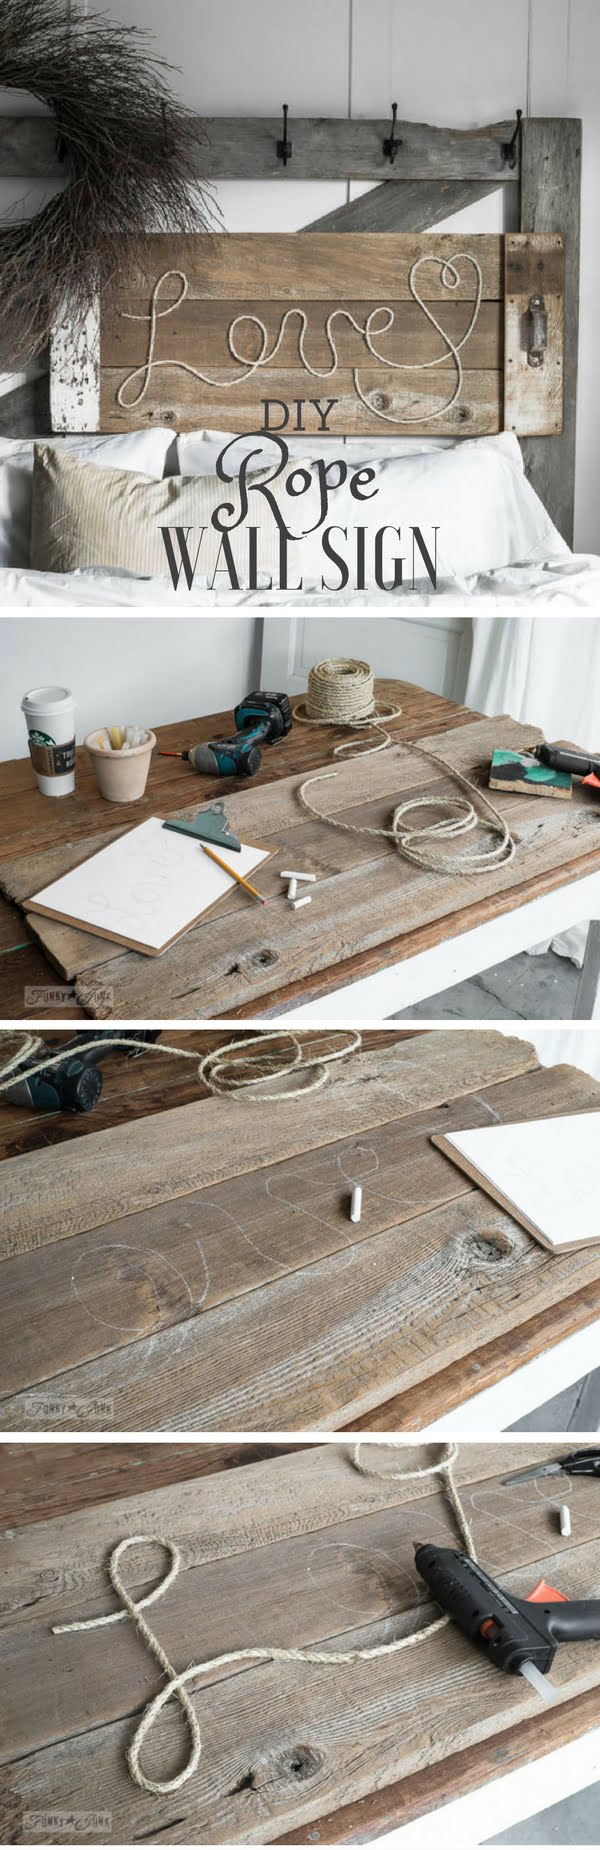 Check out this easy idea on how to make #DIY #rustic rope wall signs for #apartments #homedecor #budget